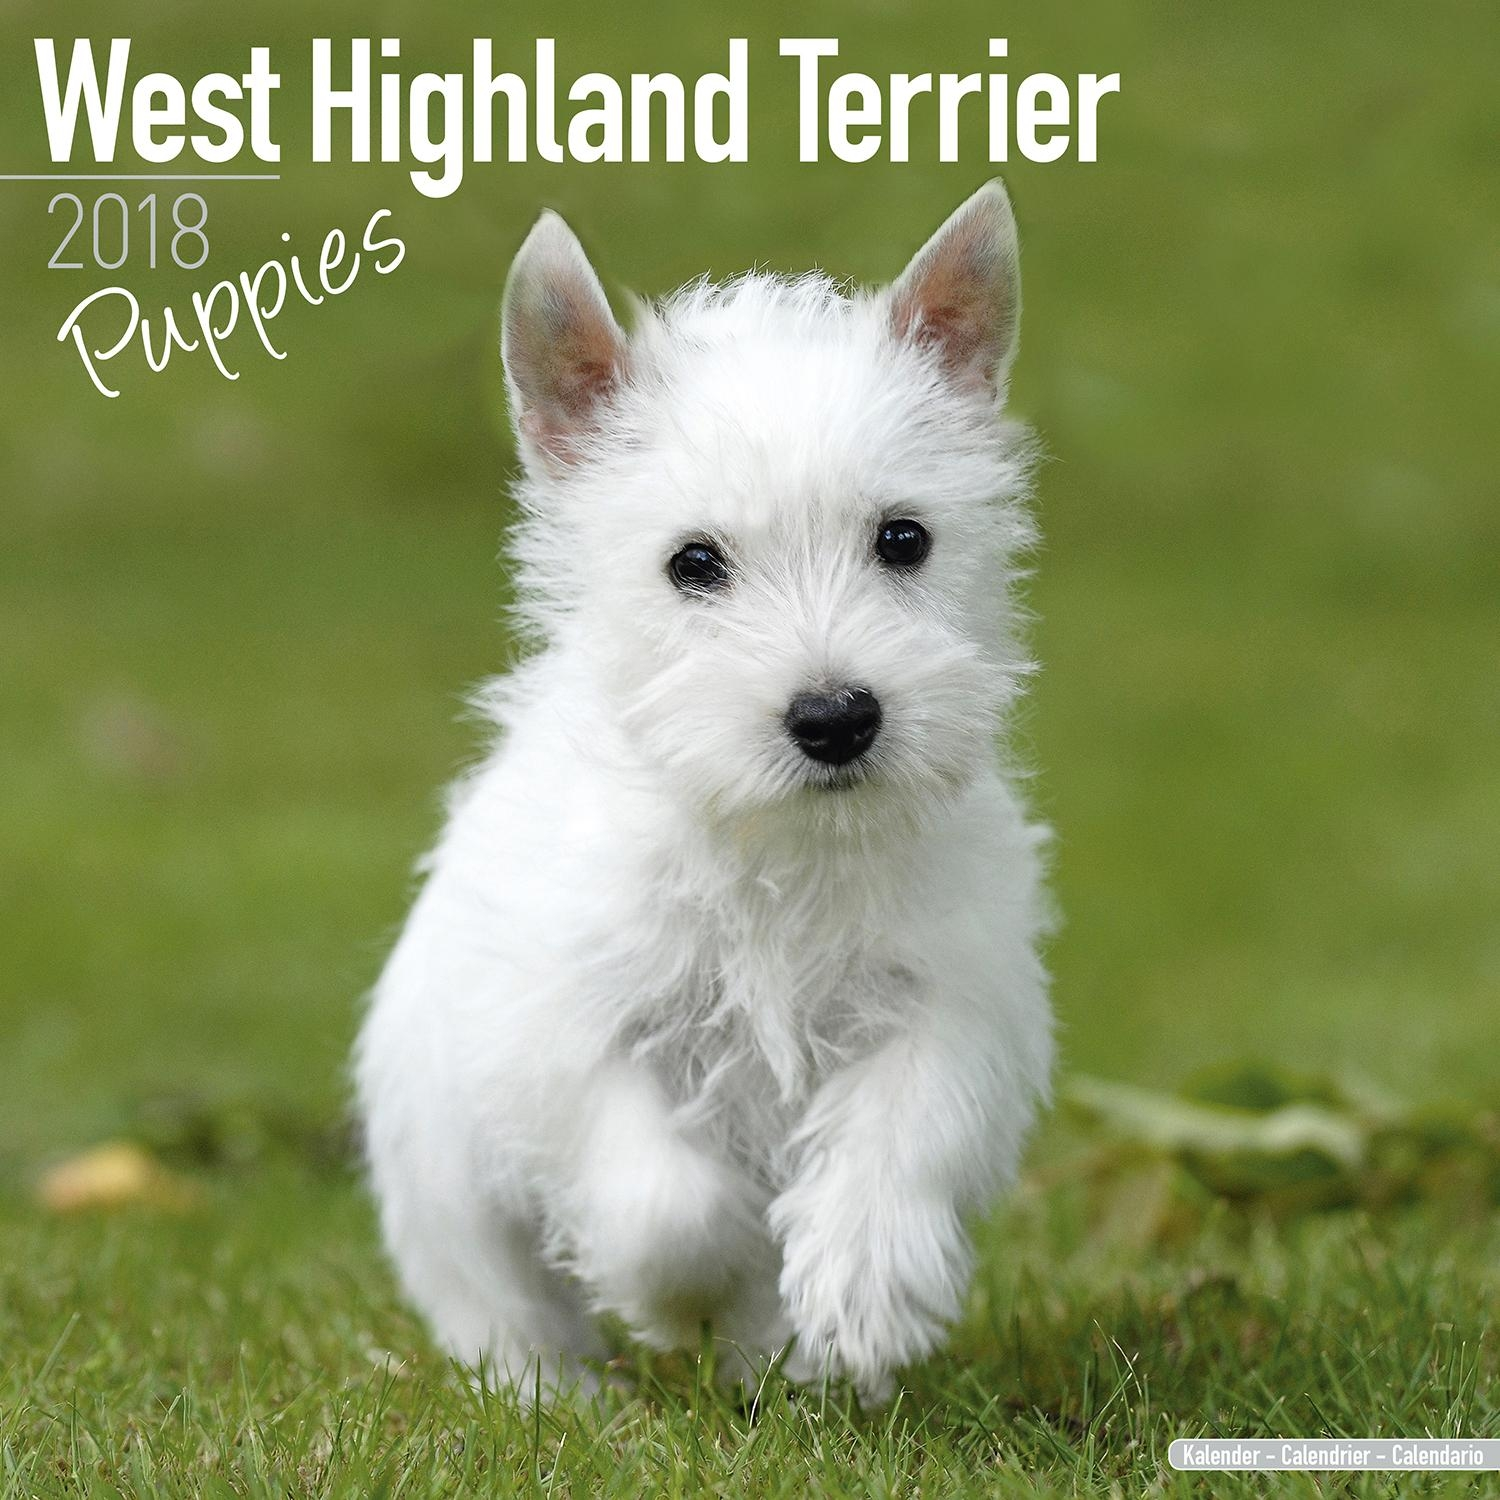 West Highland Terrier Puppies Calendar 2018 | Pet Prints Inc (Image 14 of 20)